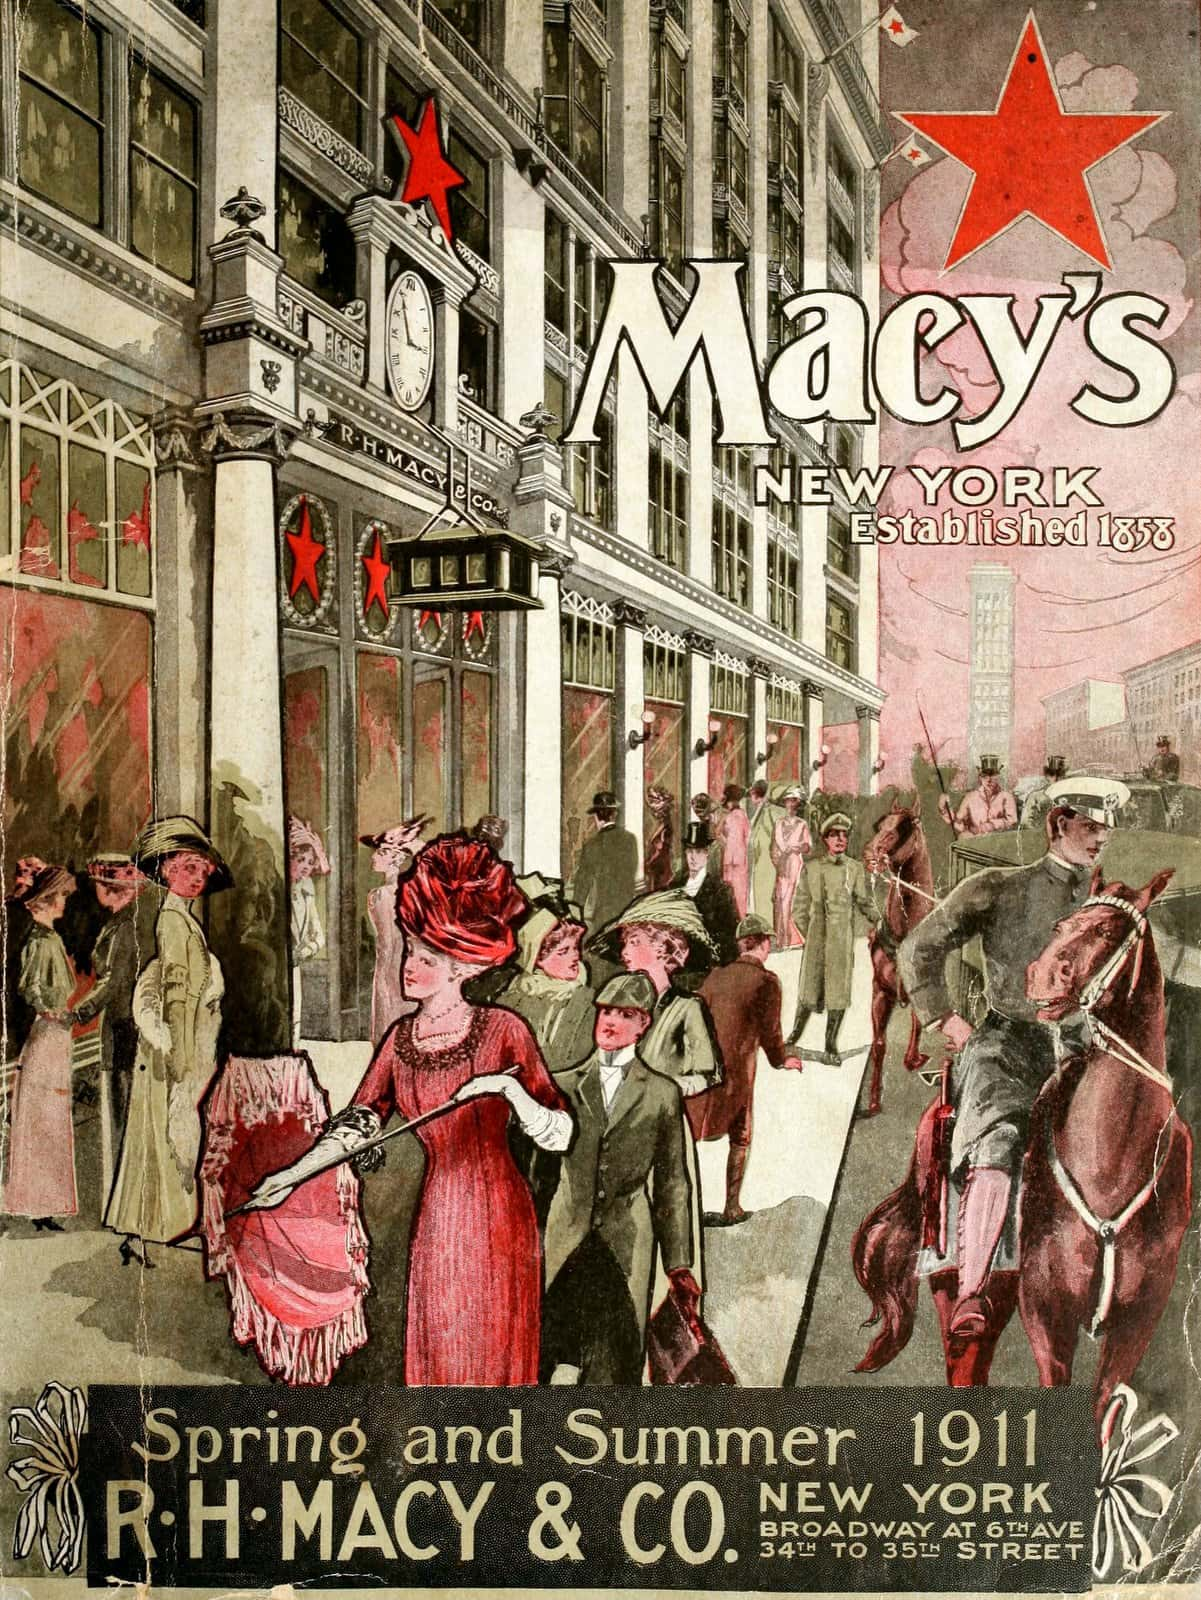 R H Macy and Co - New York (1911)